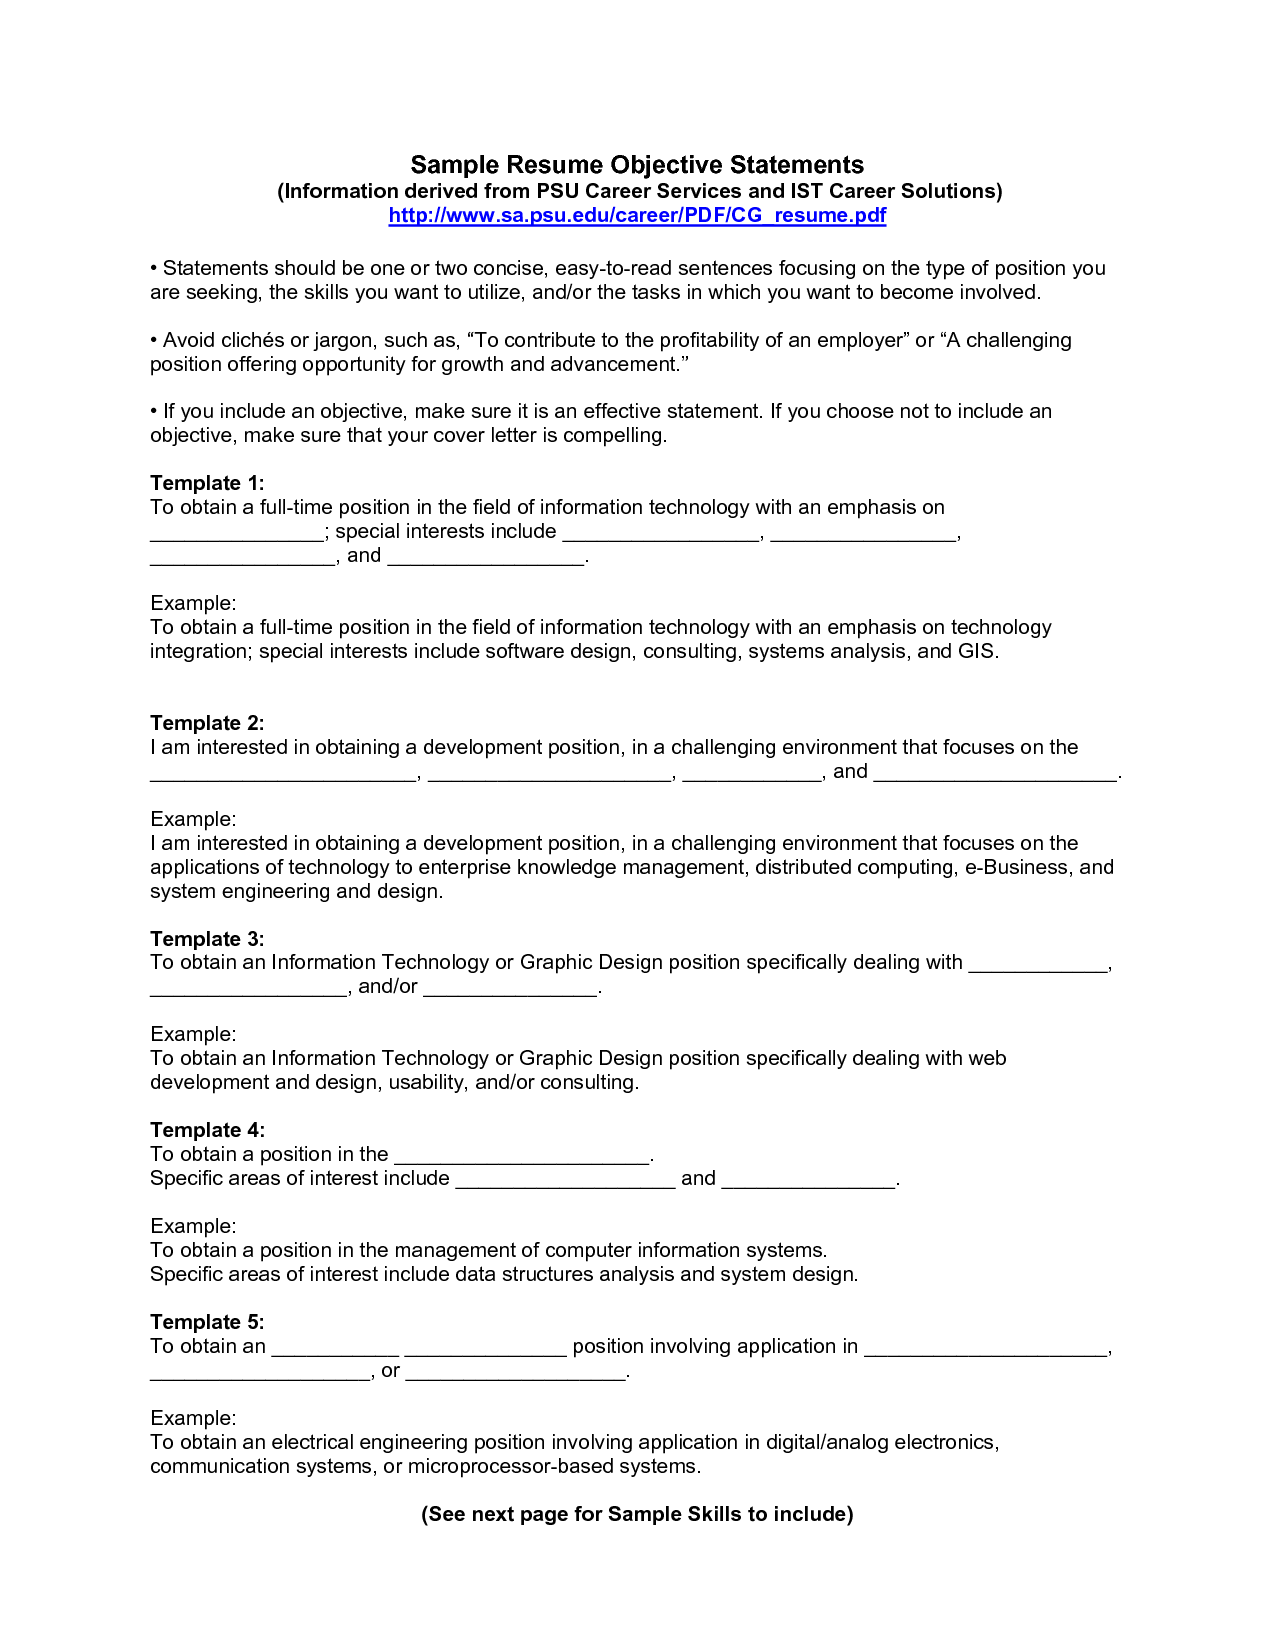 Customer Service Resume Objective Examples 10 Sample Resume Objective Statements